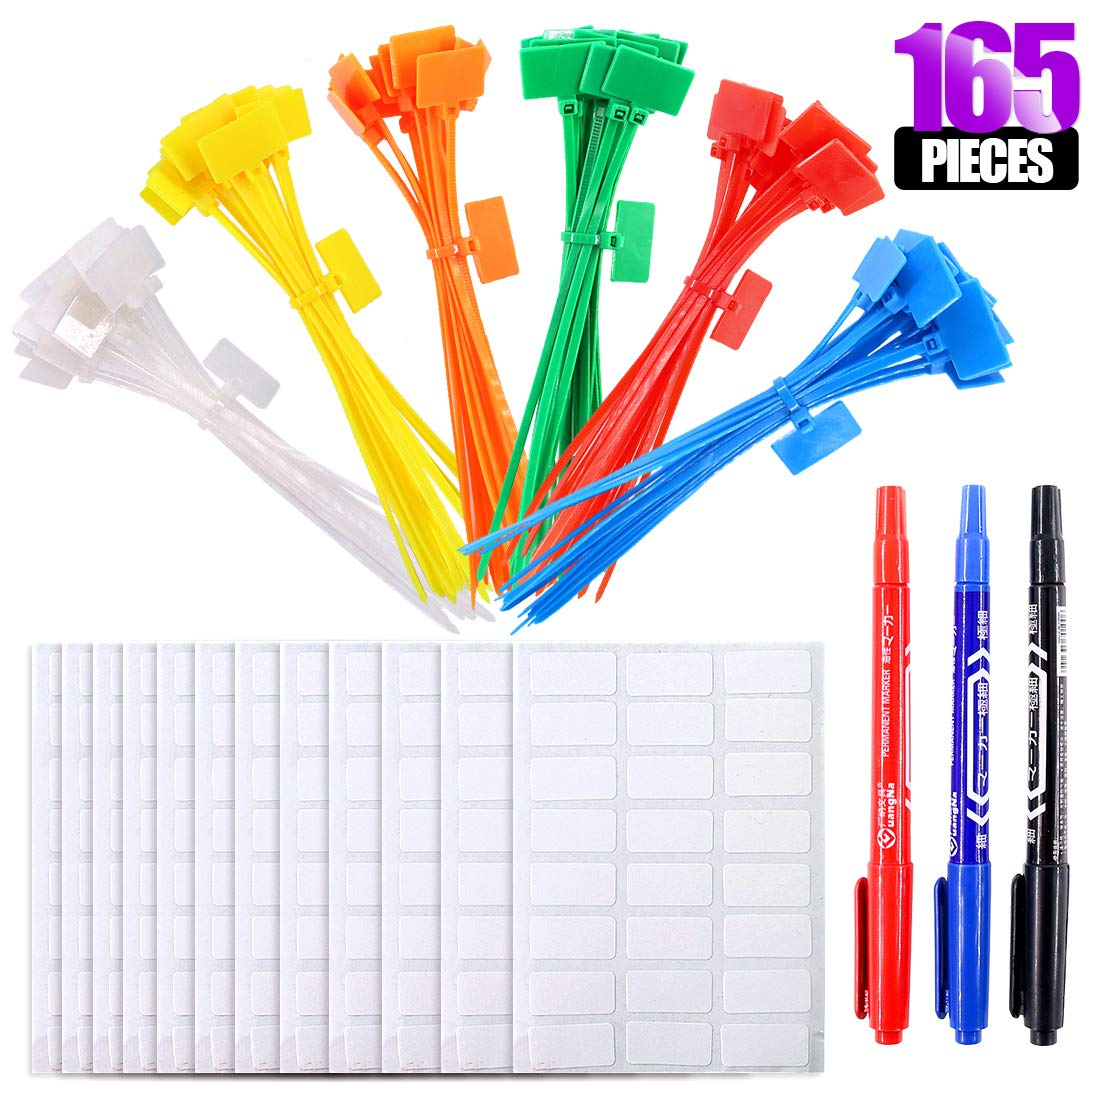 Swpeet 165Pcs Nylon Cable Ties Kit, Including 150Pcs 6 Colors 15cm Reusable Fastening Durable Nylon Cable Ties with 3Pcs Markers and 12Pcs Label Paper for Network Cables Powe